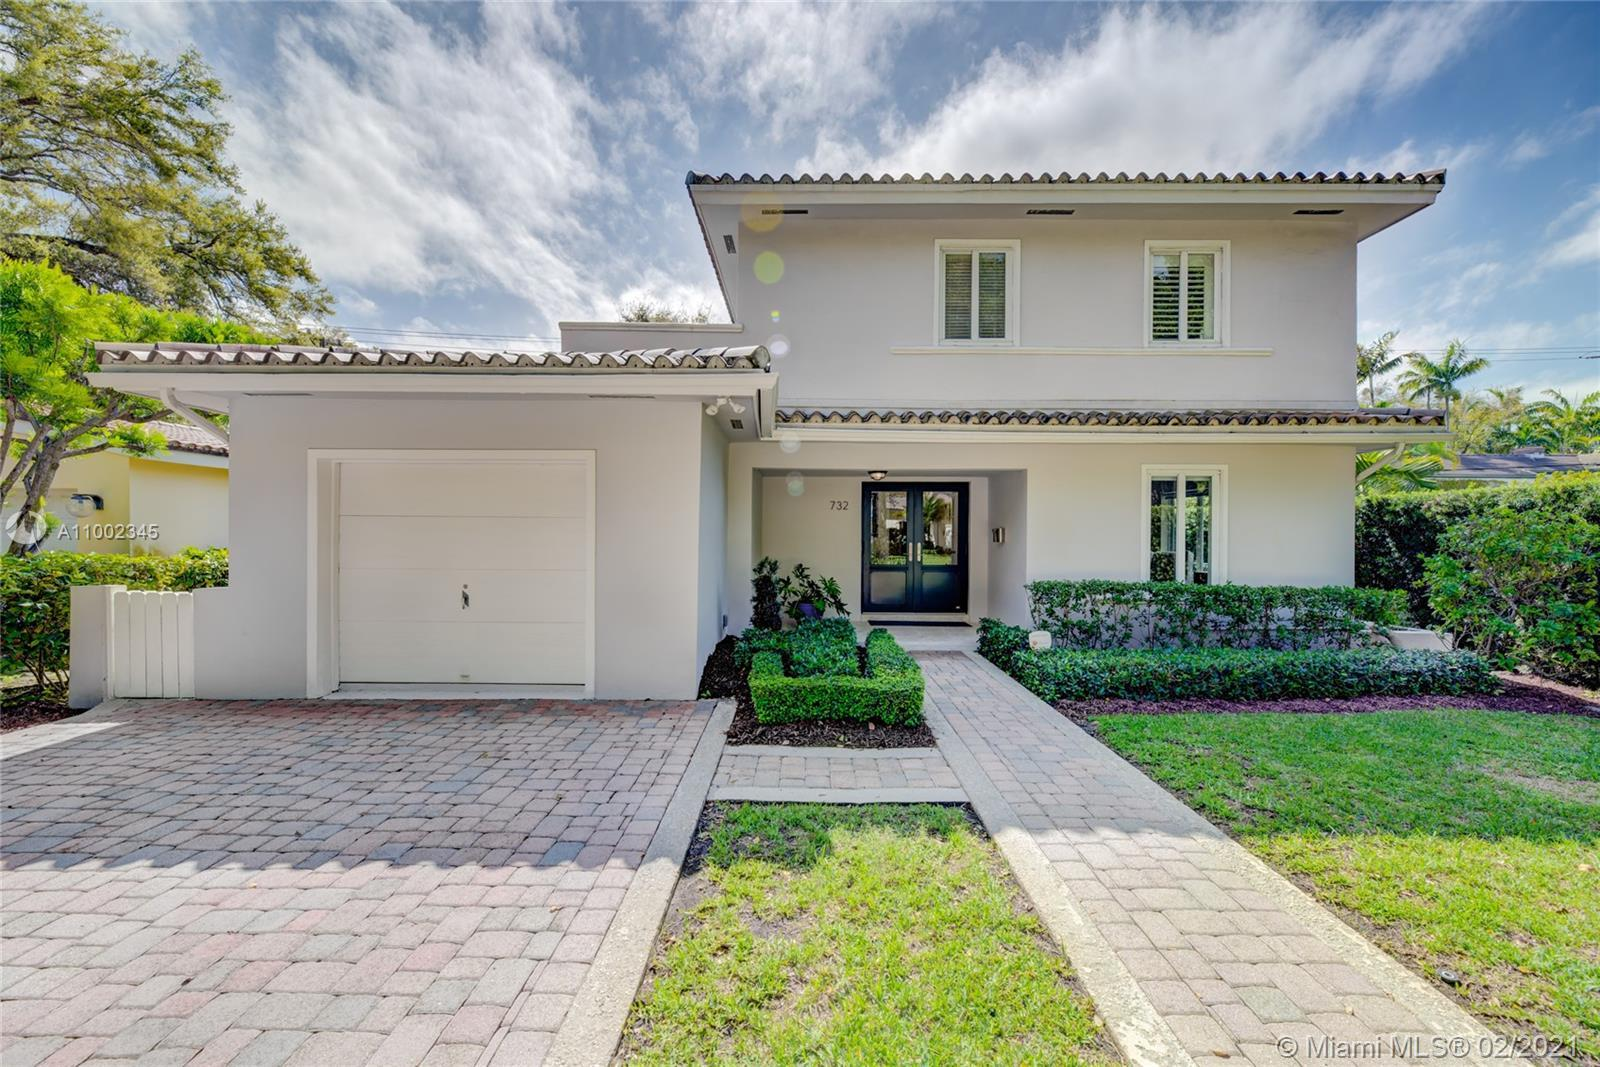 An amazing 2 story home with great street presence in a sought after Coral Gables on a tree lined st